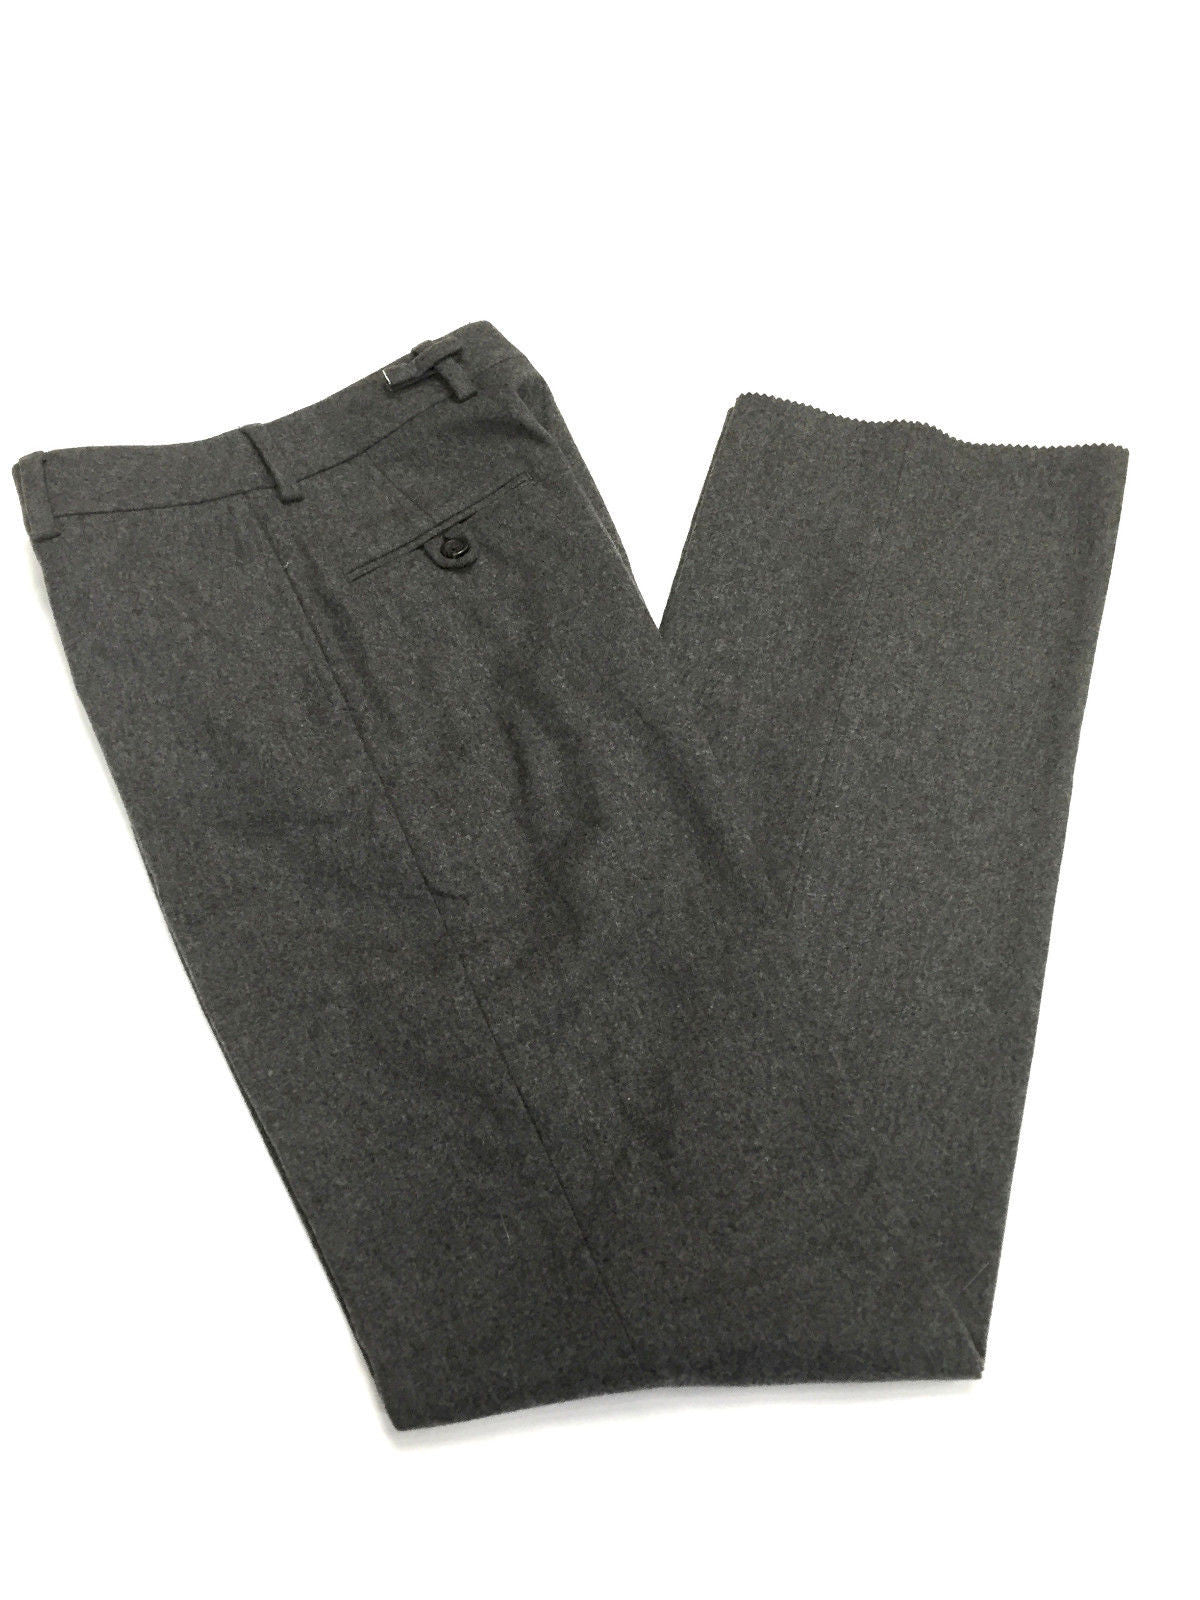 61bd10514 ... bisbiz.com POLO by RALPH LAUREN New with Tags Dark-Gray Wool-Blend ...